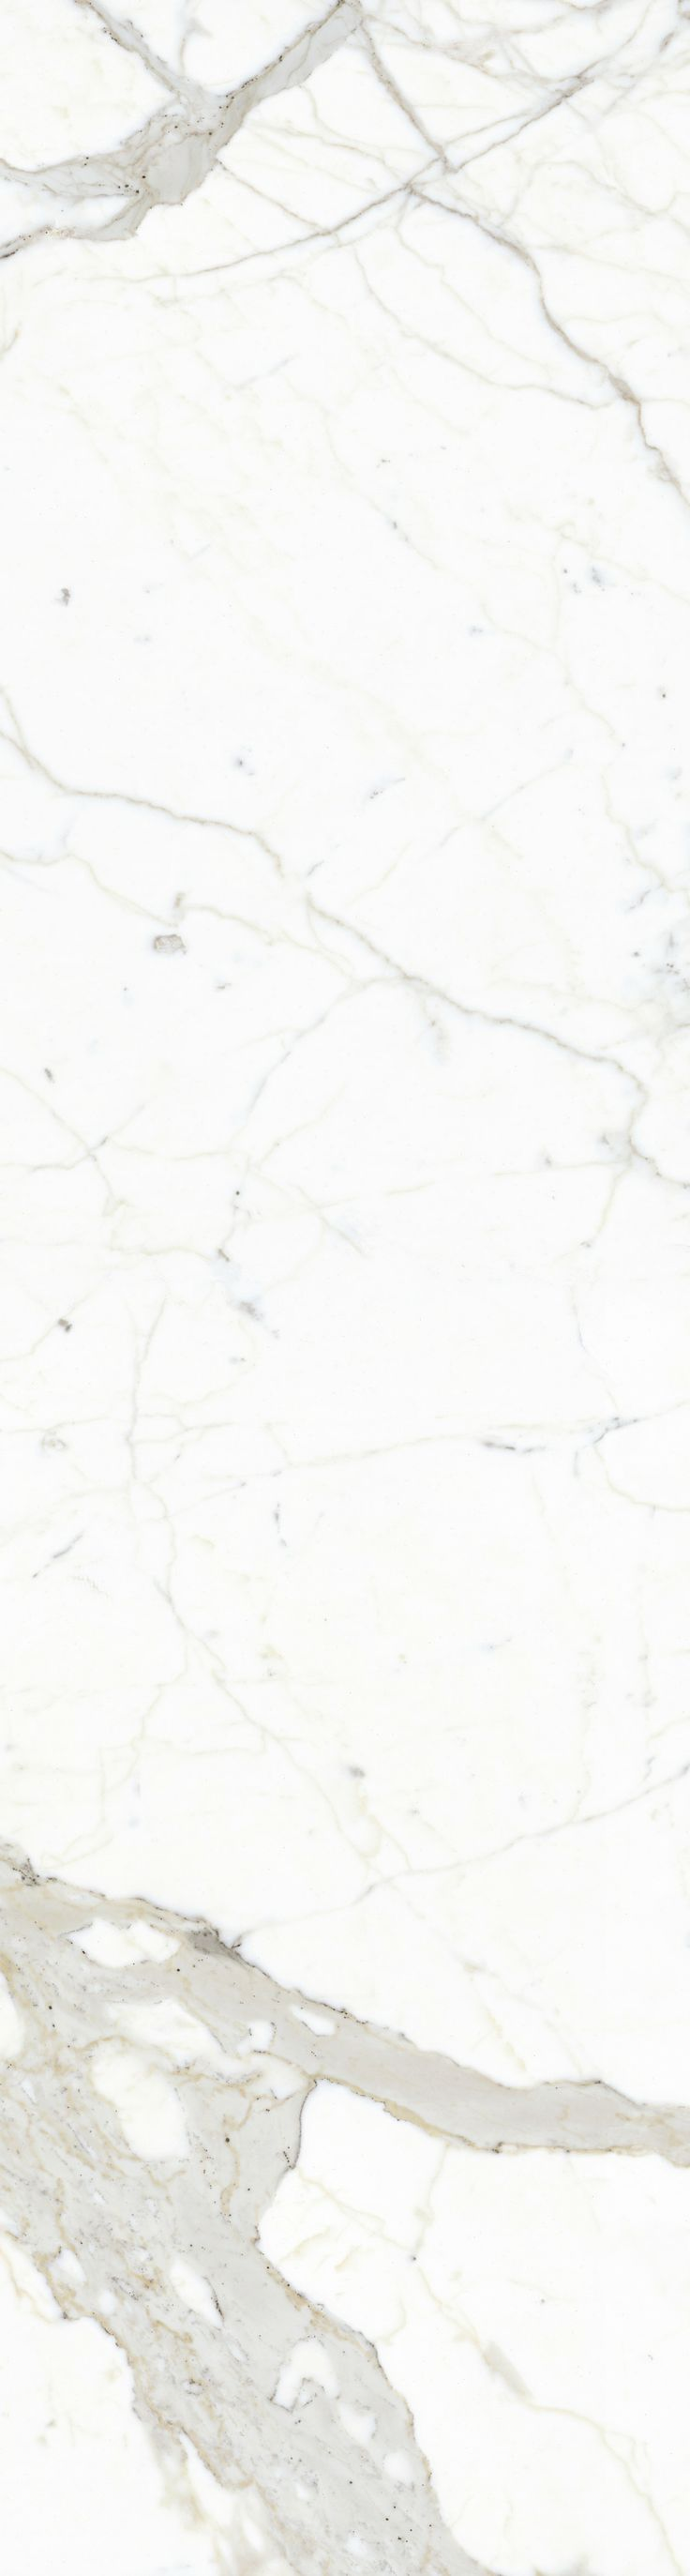 Porcelain Tile | Marble Look: Plane Calacatta Vena, large panels.  http://www.stonepeakceramics.com/products.php